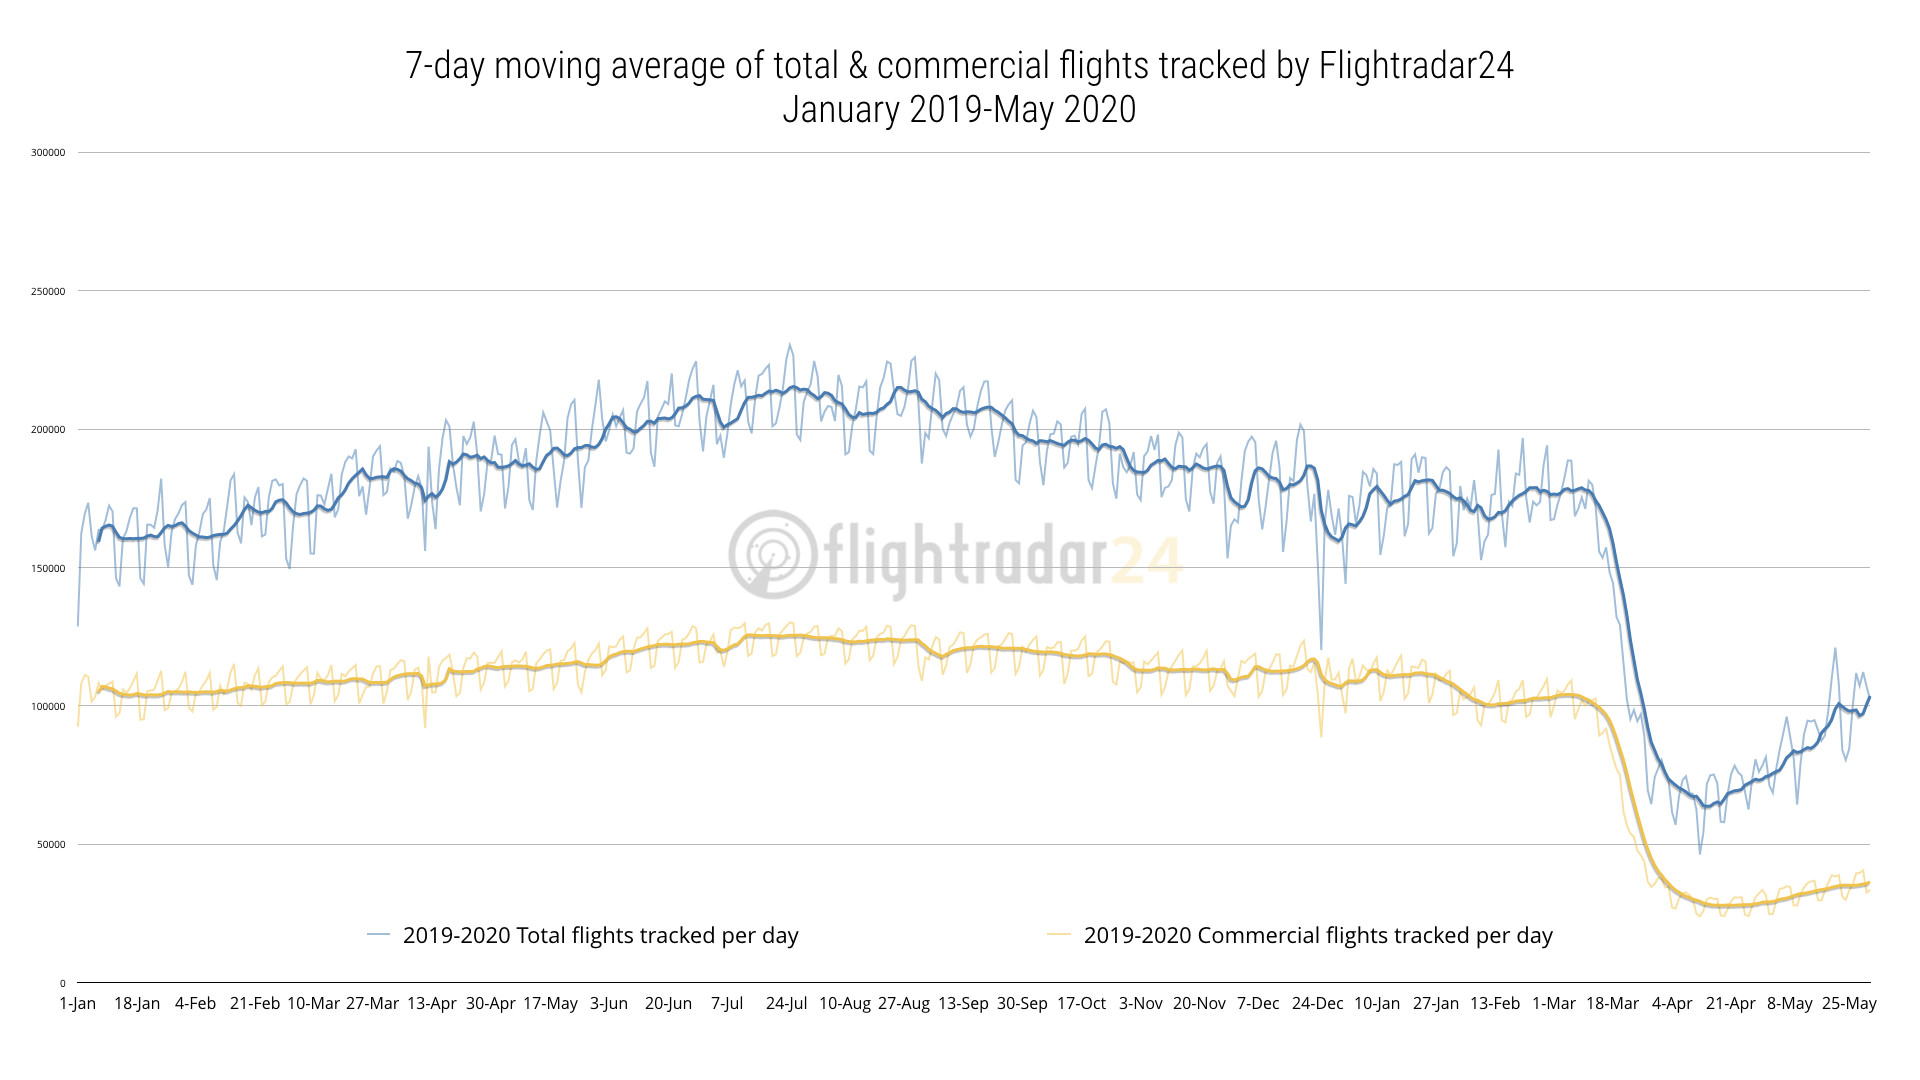 2019-2020 Total and Commercial flights tracked